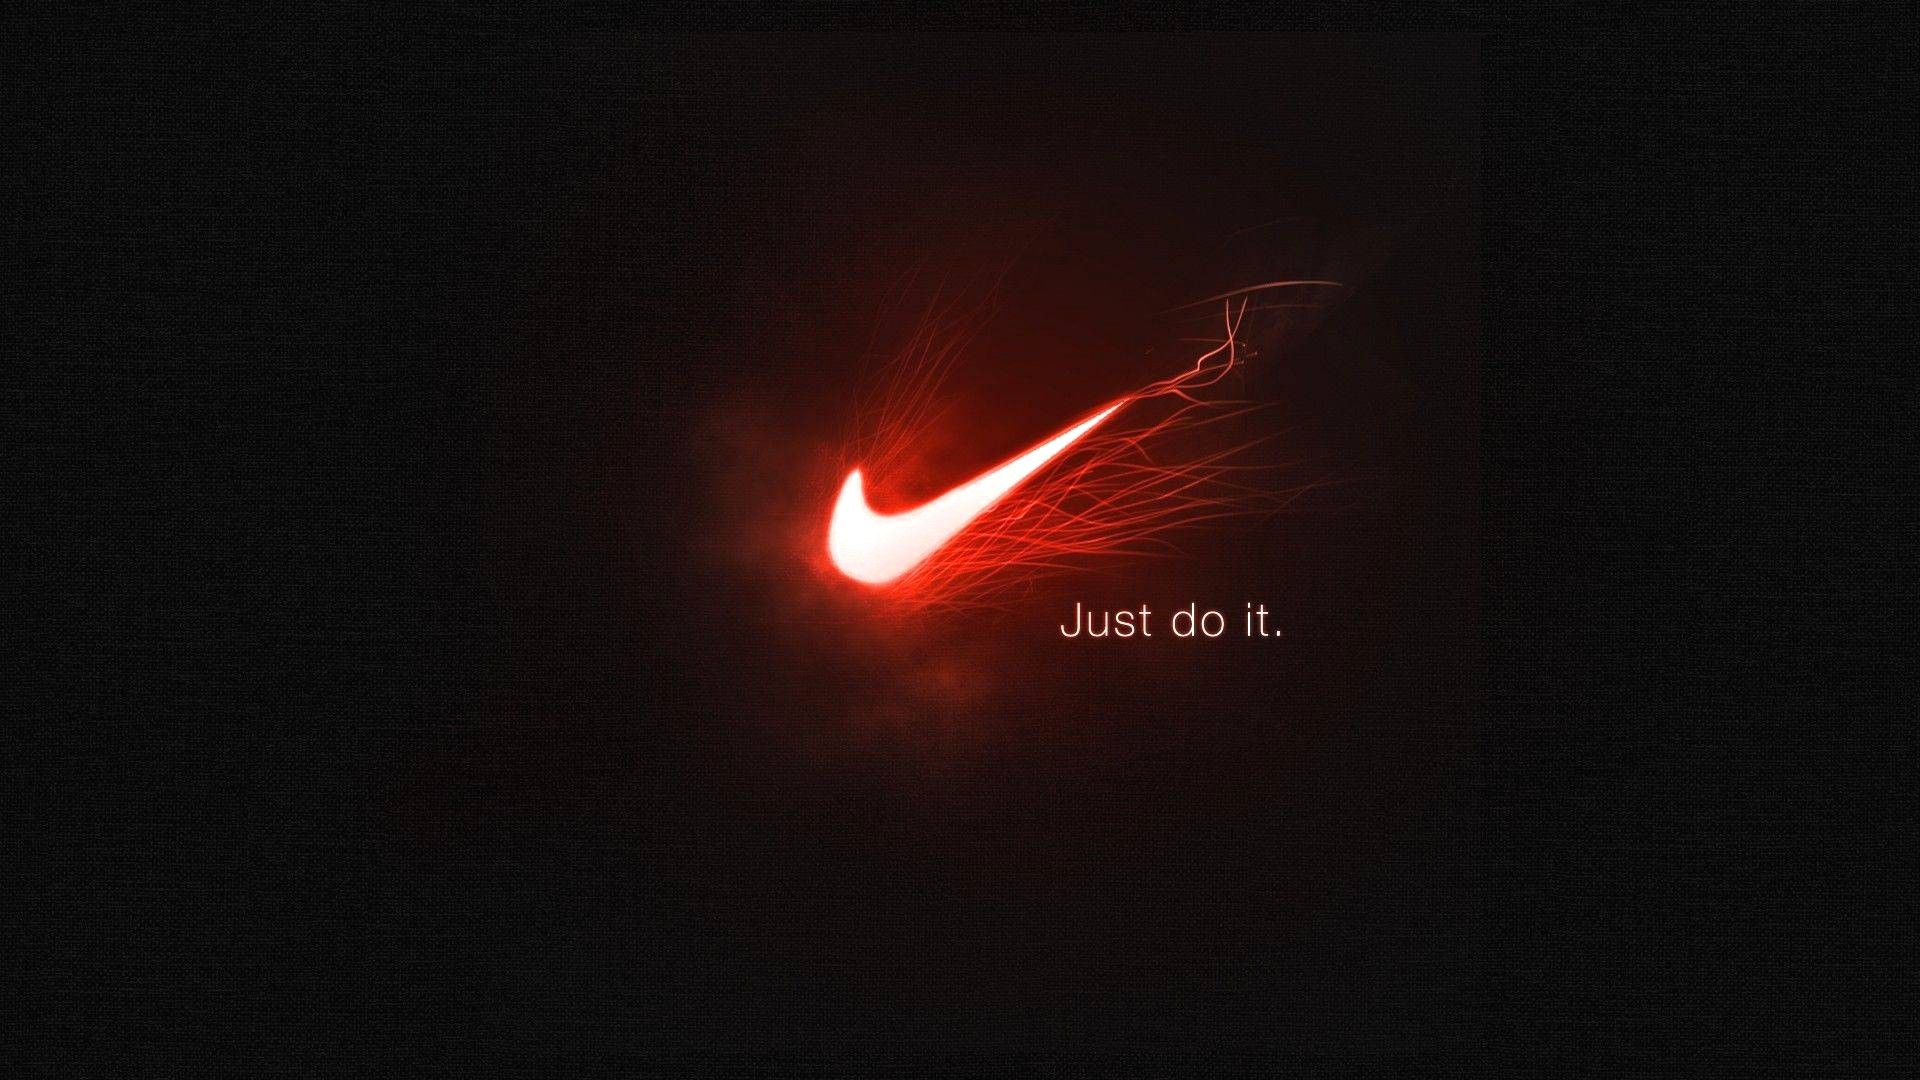 Nike Wallpapers Hd Full Just Do It 4k High Definition Windows Avec